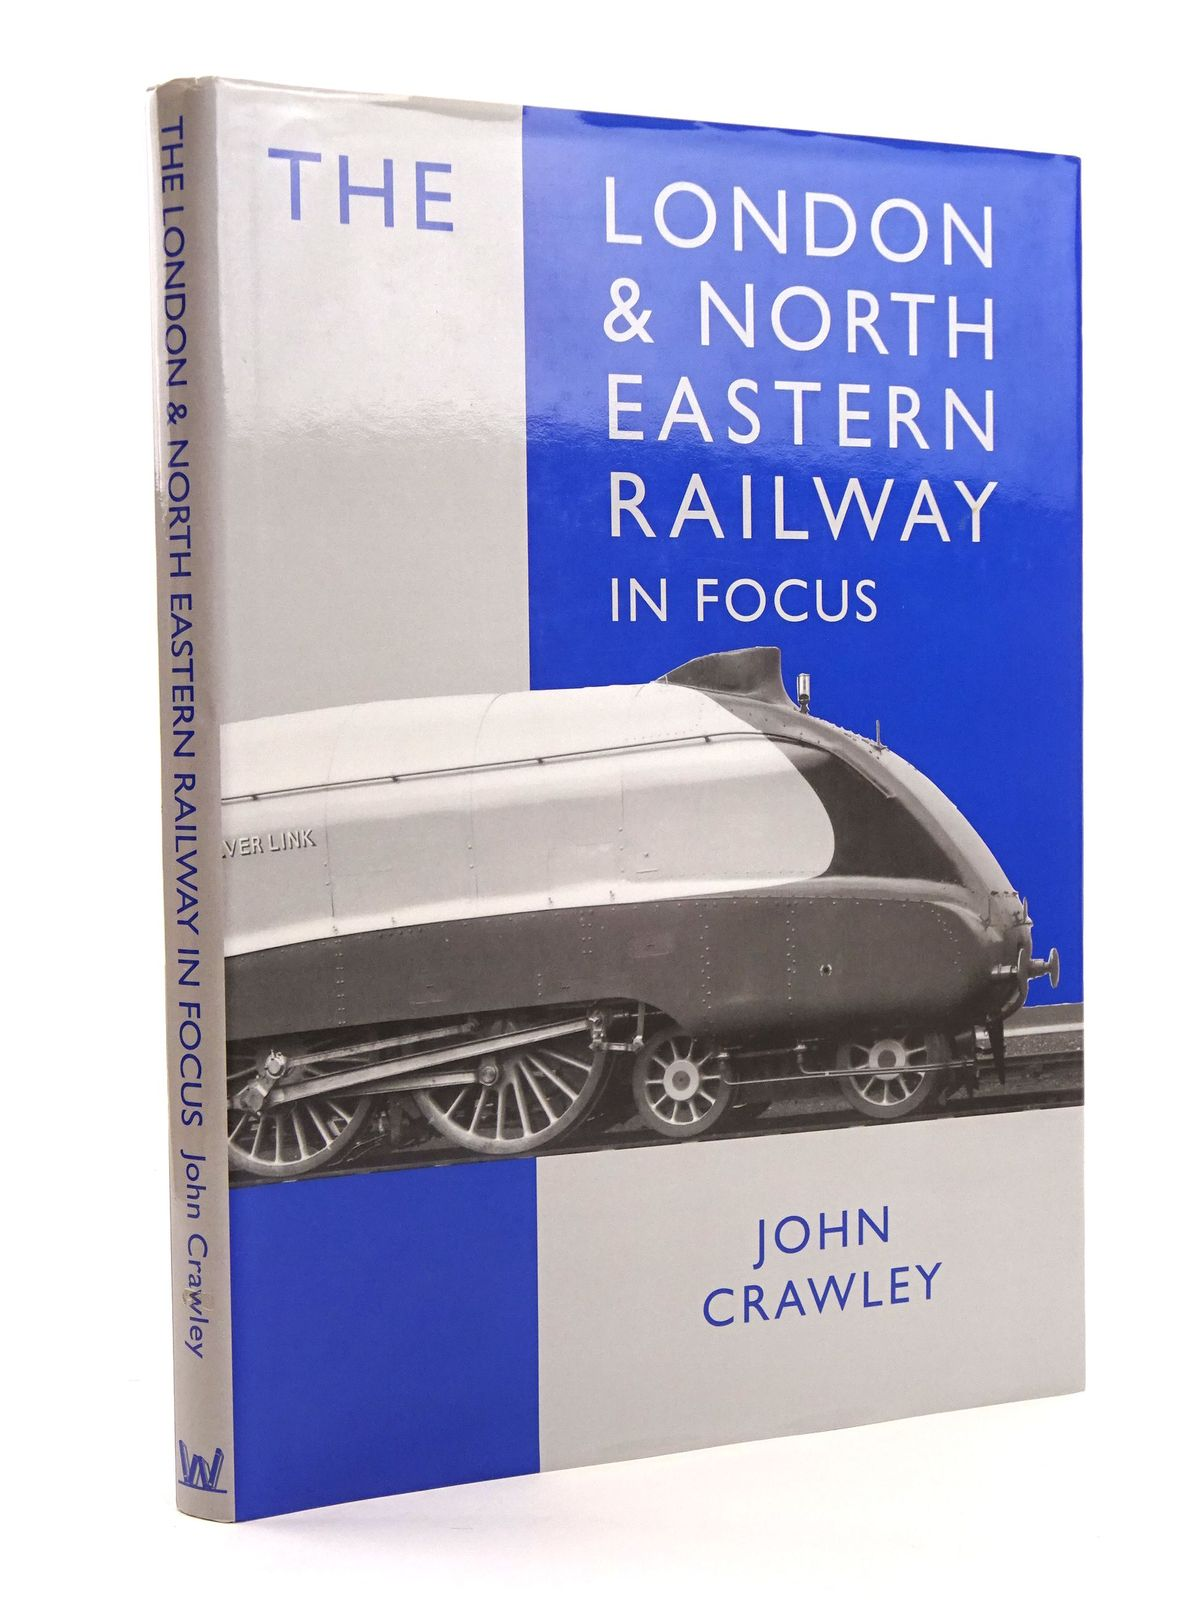 Photo of THE LONDON & NORTH EASTERN RAILWAY IN FOCUS written by Crawley, John published by W.D. Wharton (STOCK CODE: 1818103)  for sale by Stella & Rose's Books